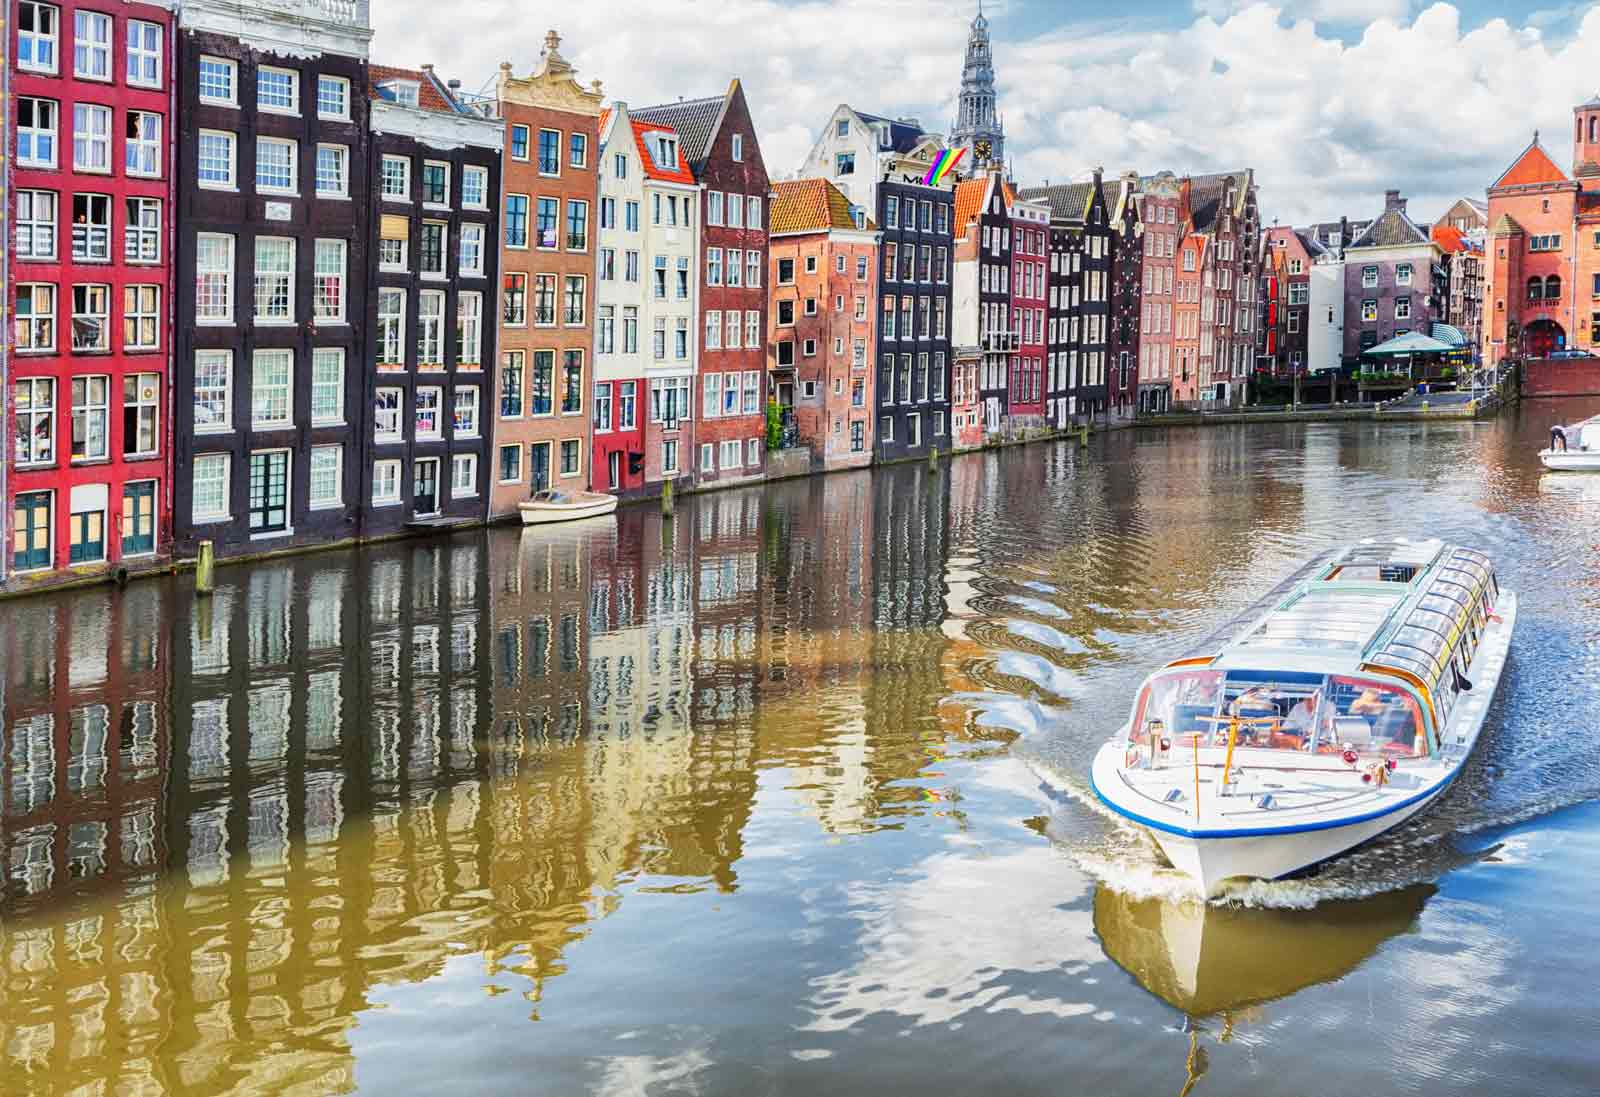 5 Reasons Why You Should Get An iAmsterdam City Card